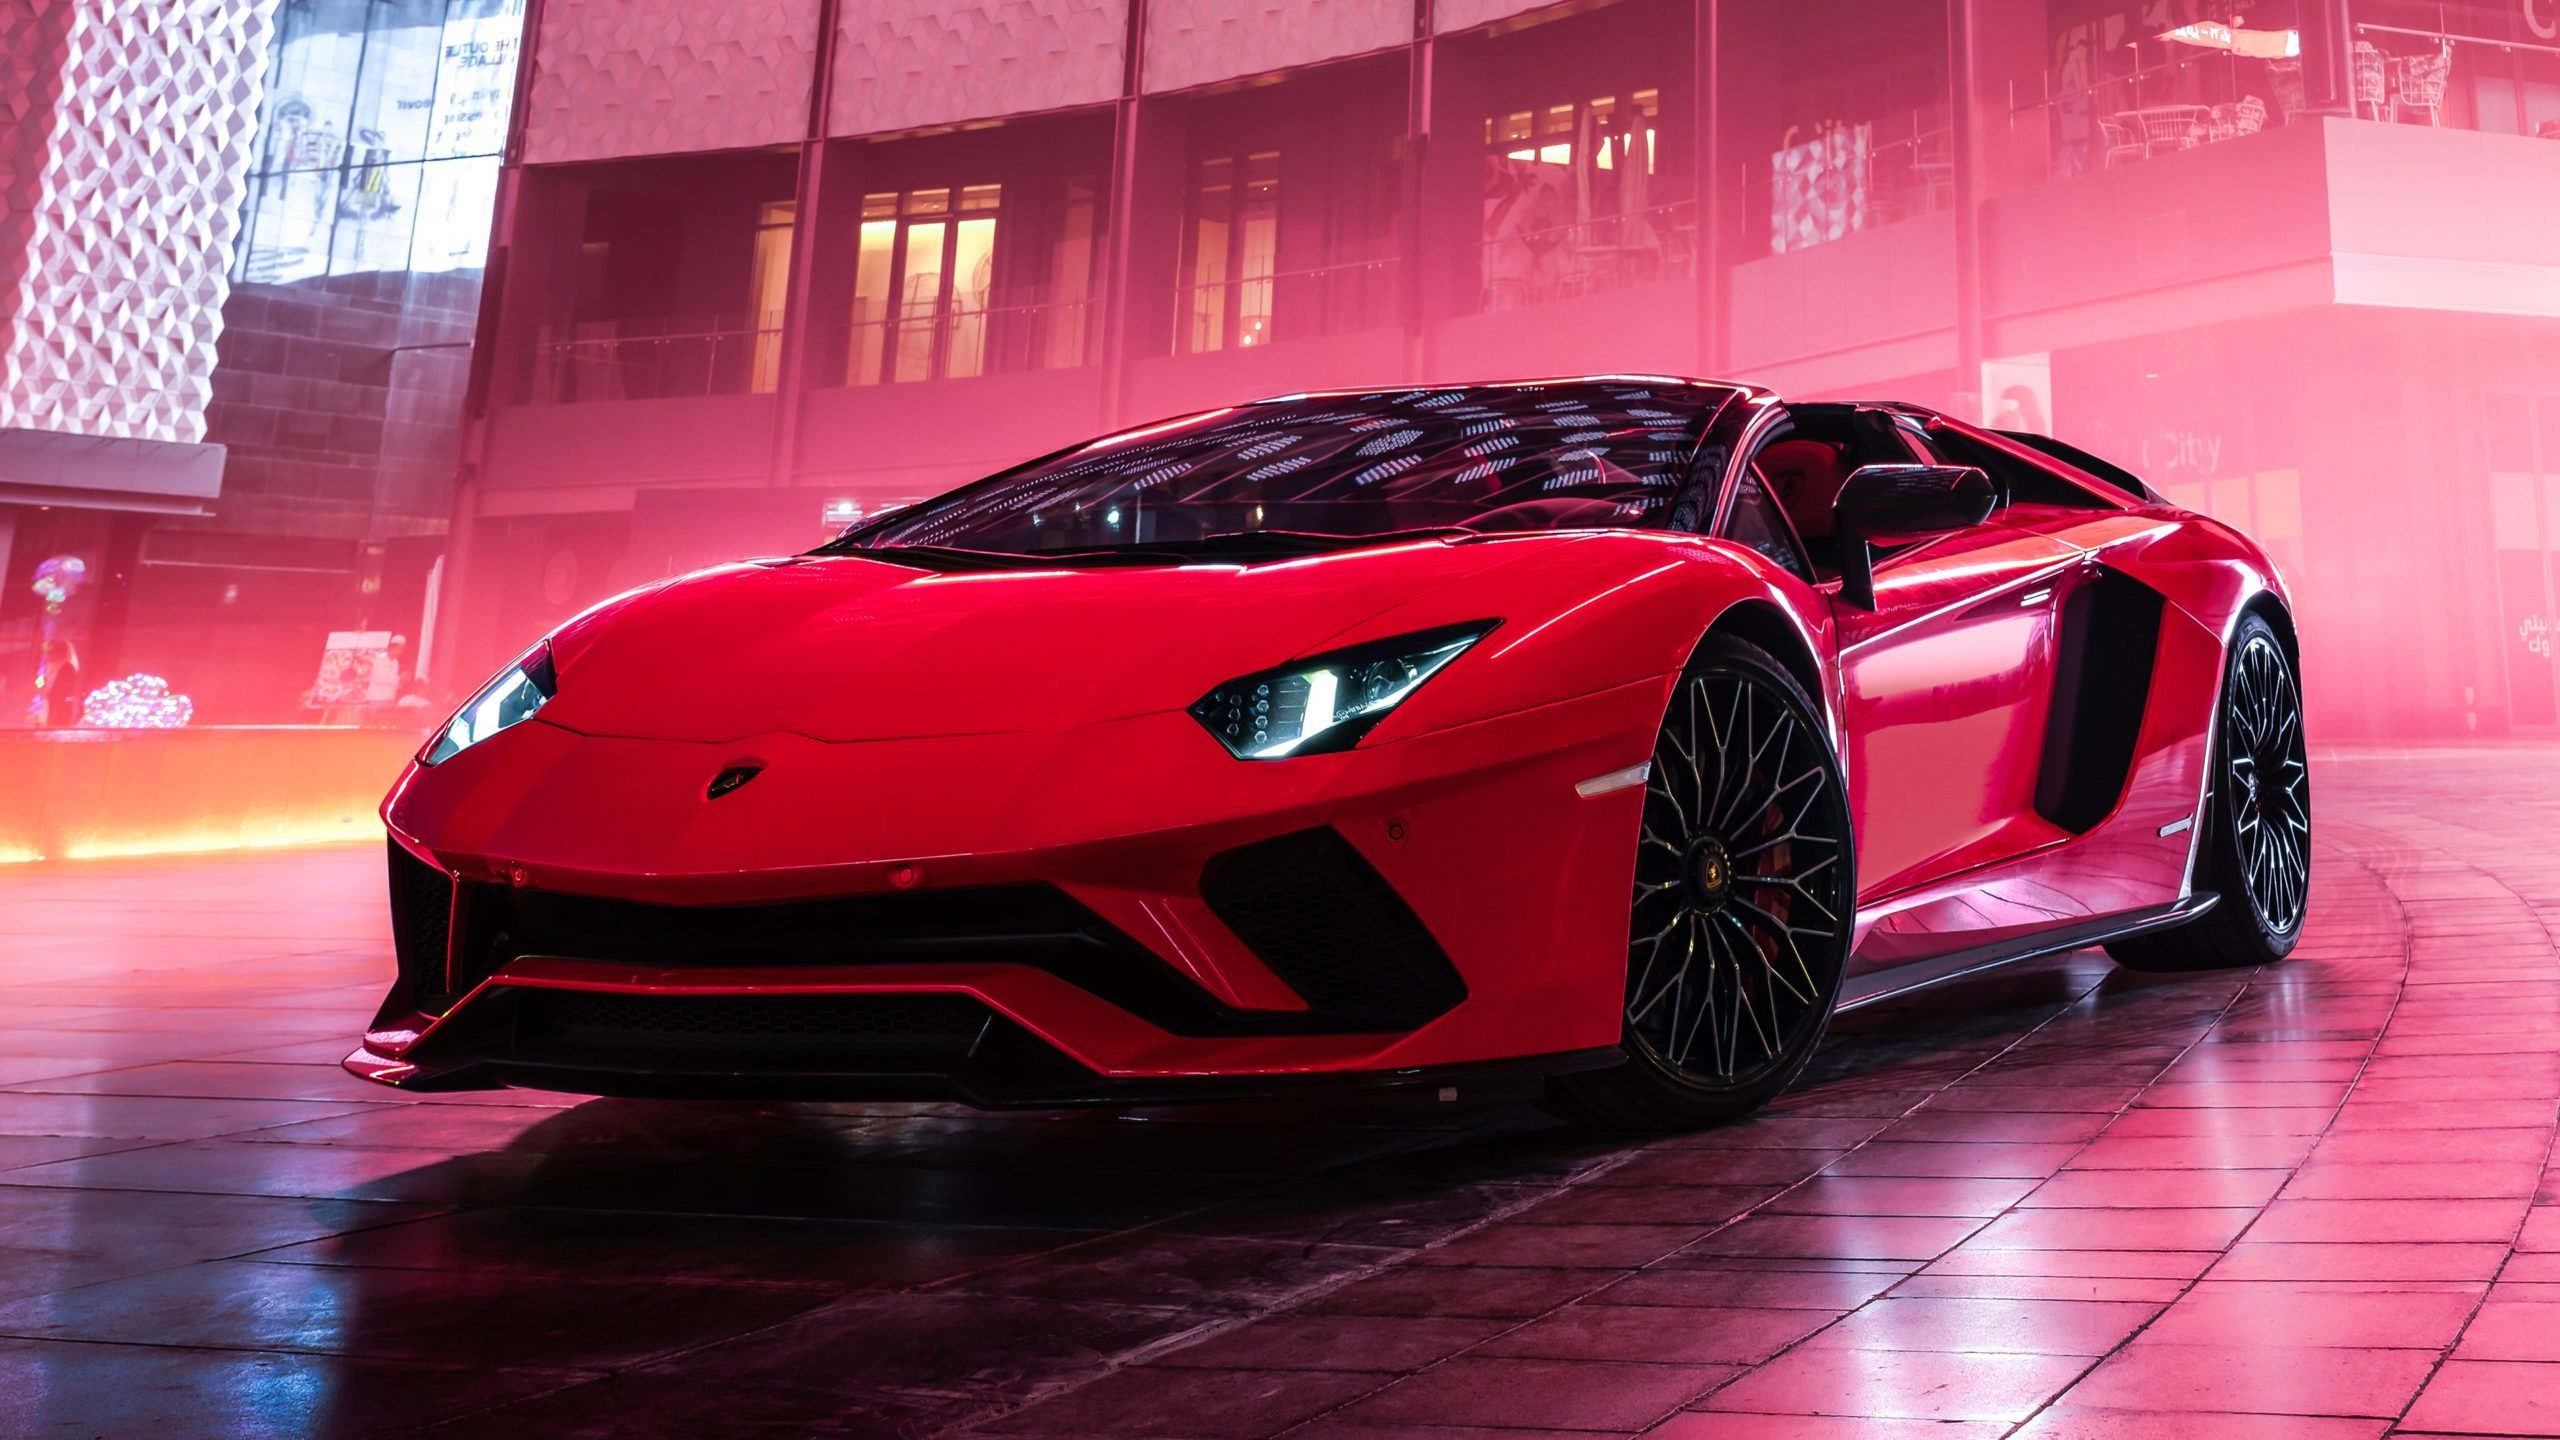 Red Lamborghini Aventador Roadster Car